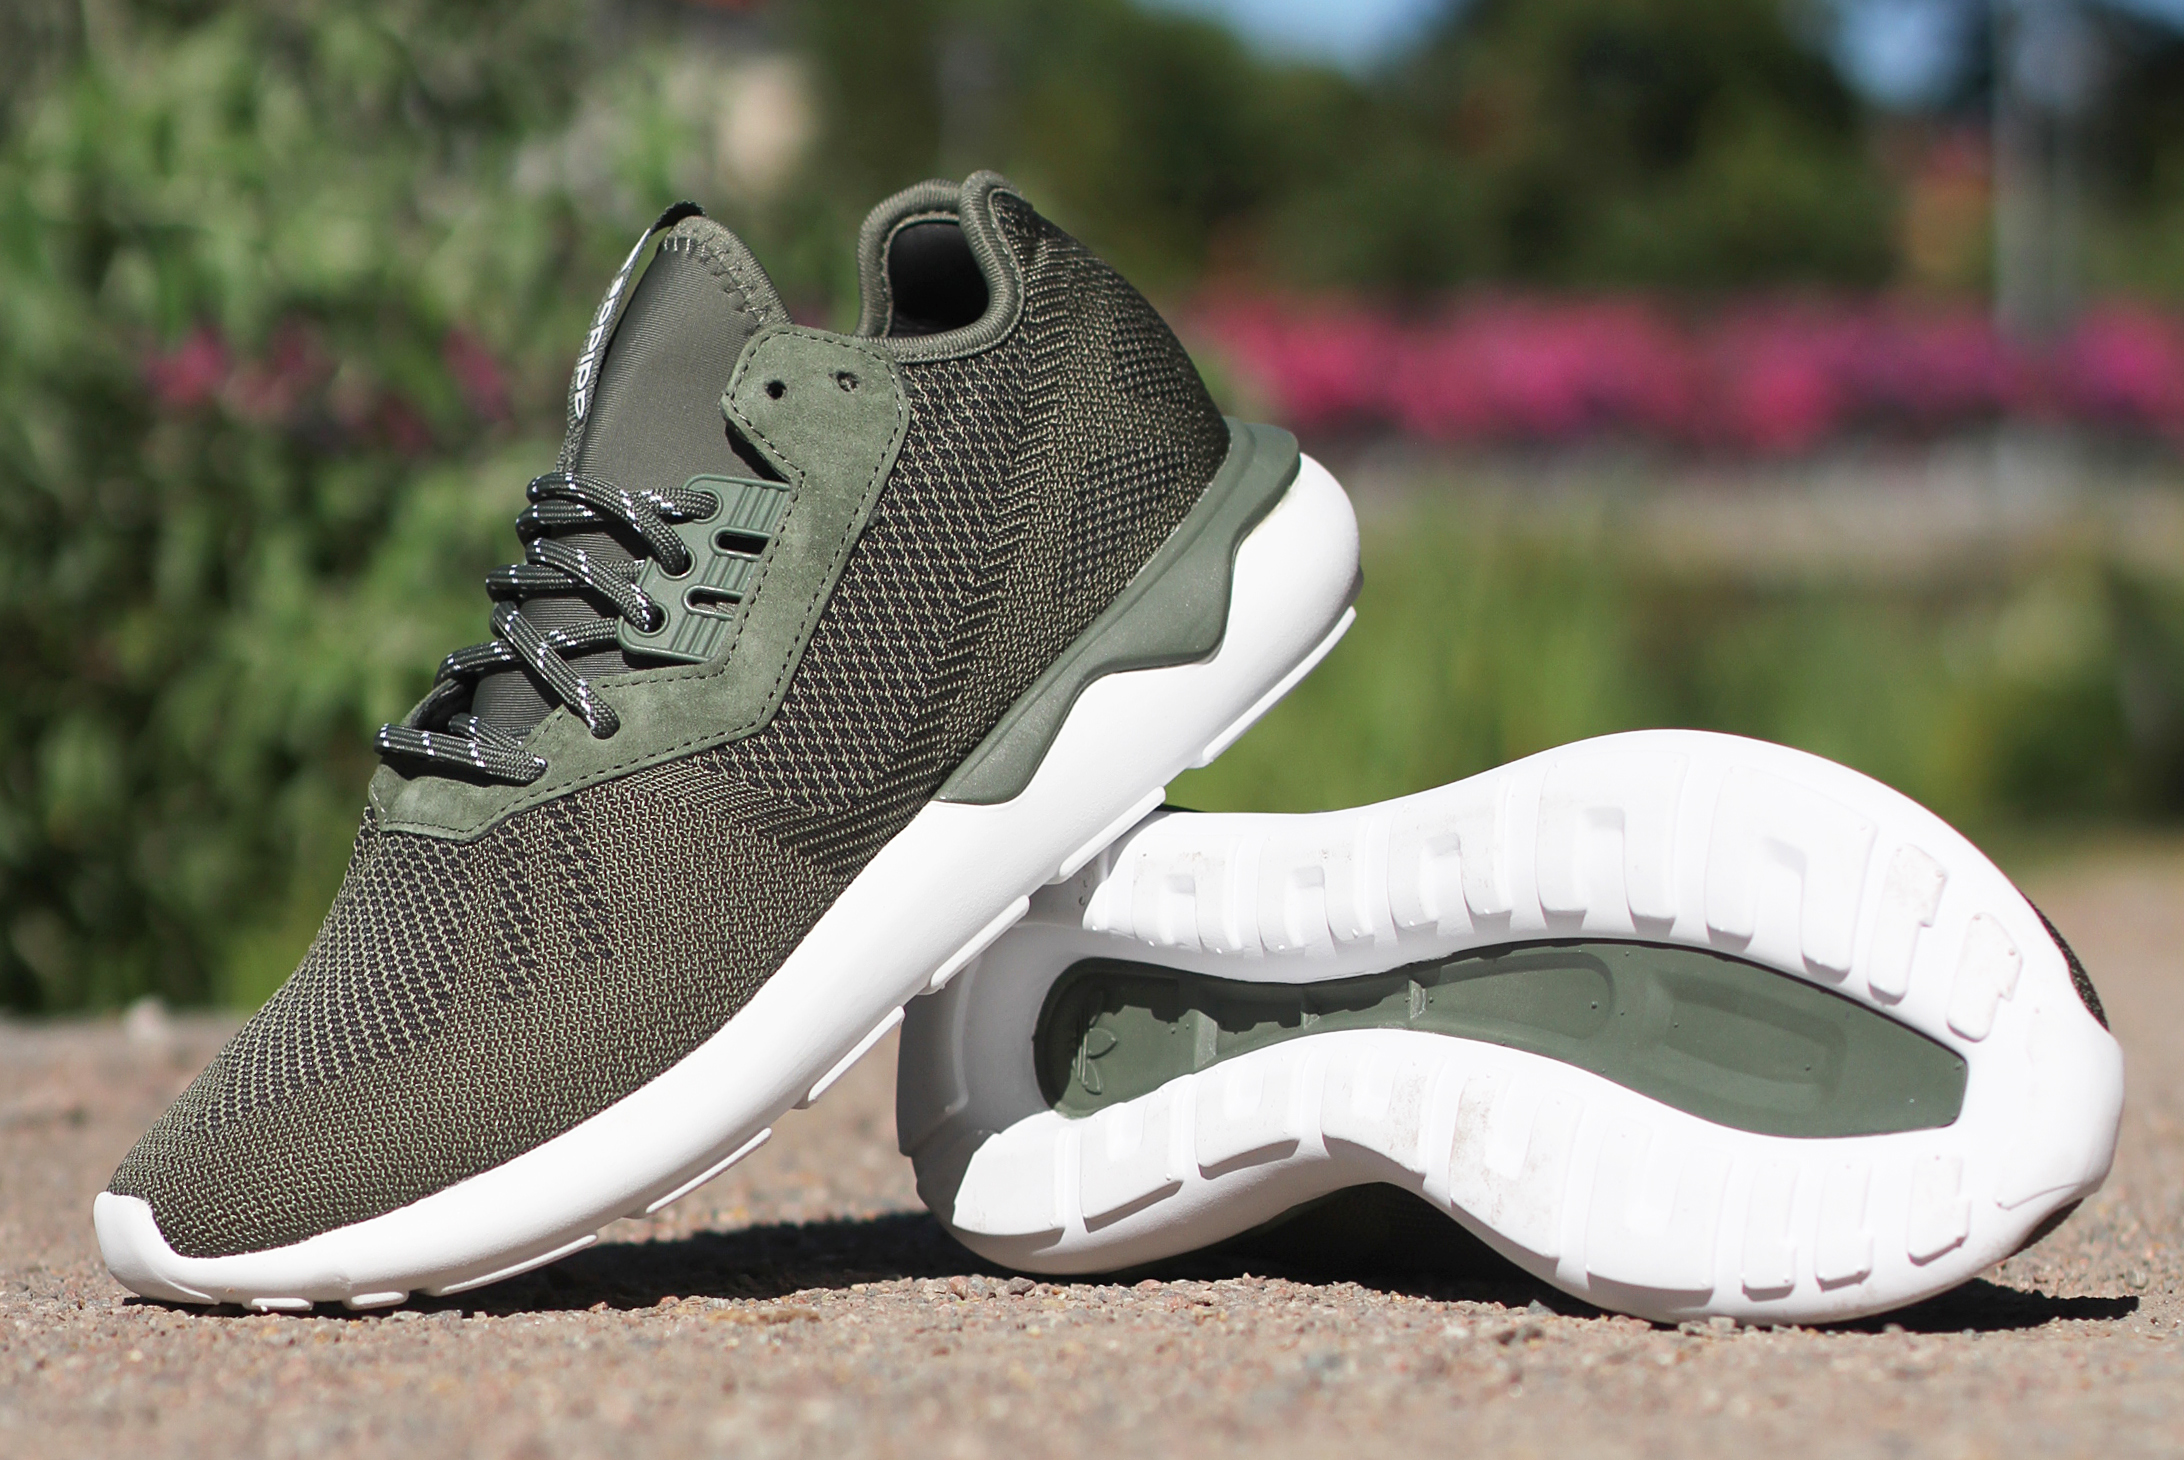 Adidas Tubular Weave Green wallbank-lfc.co.uk bdd2d321f